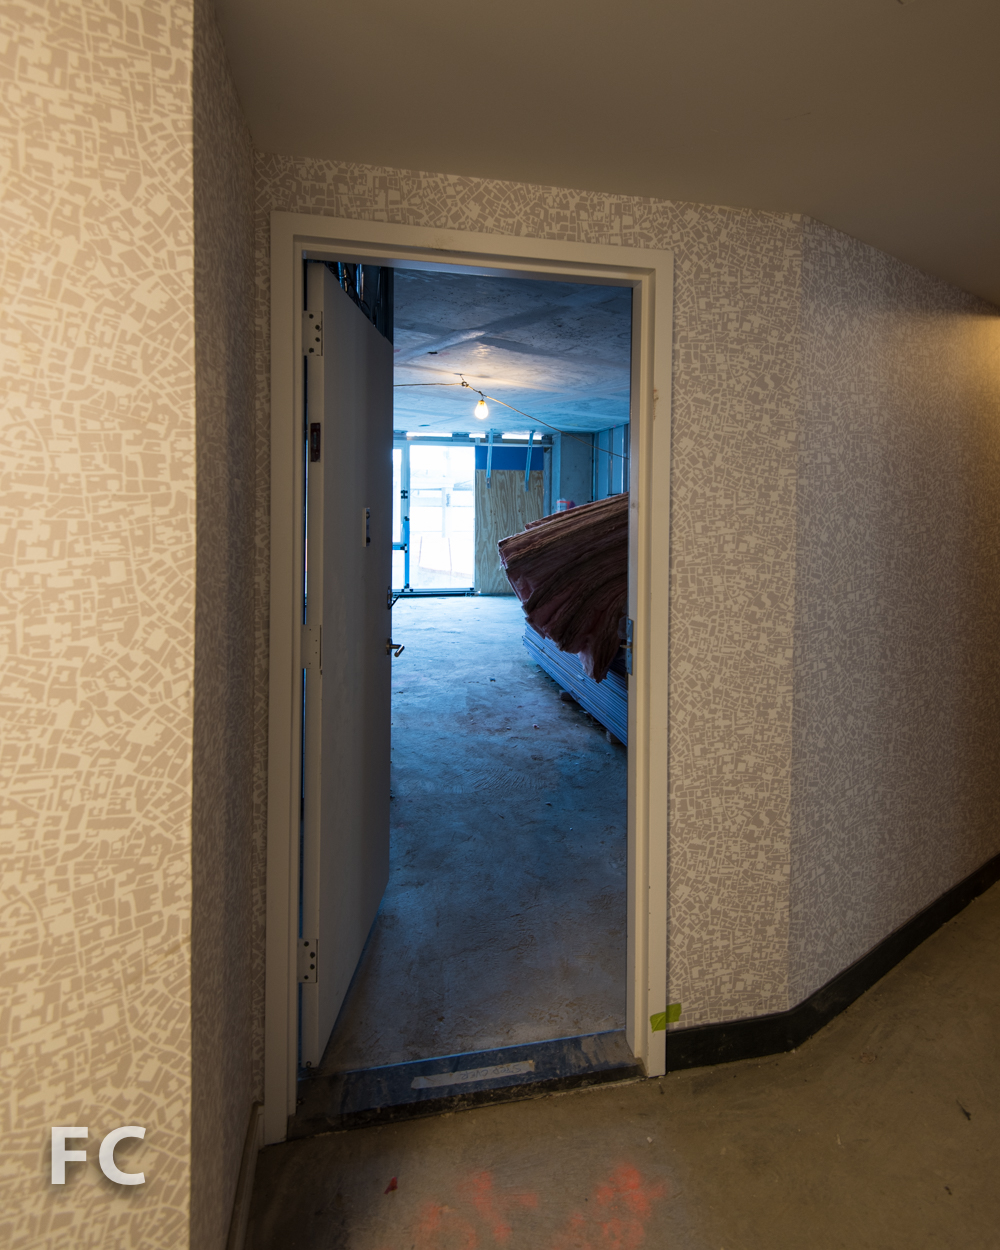 Typical residential corridor mockup.